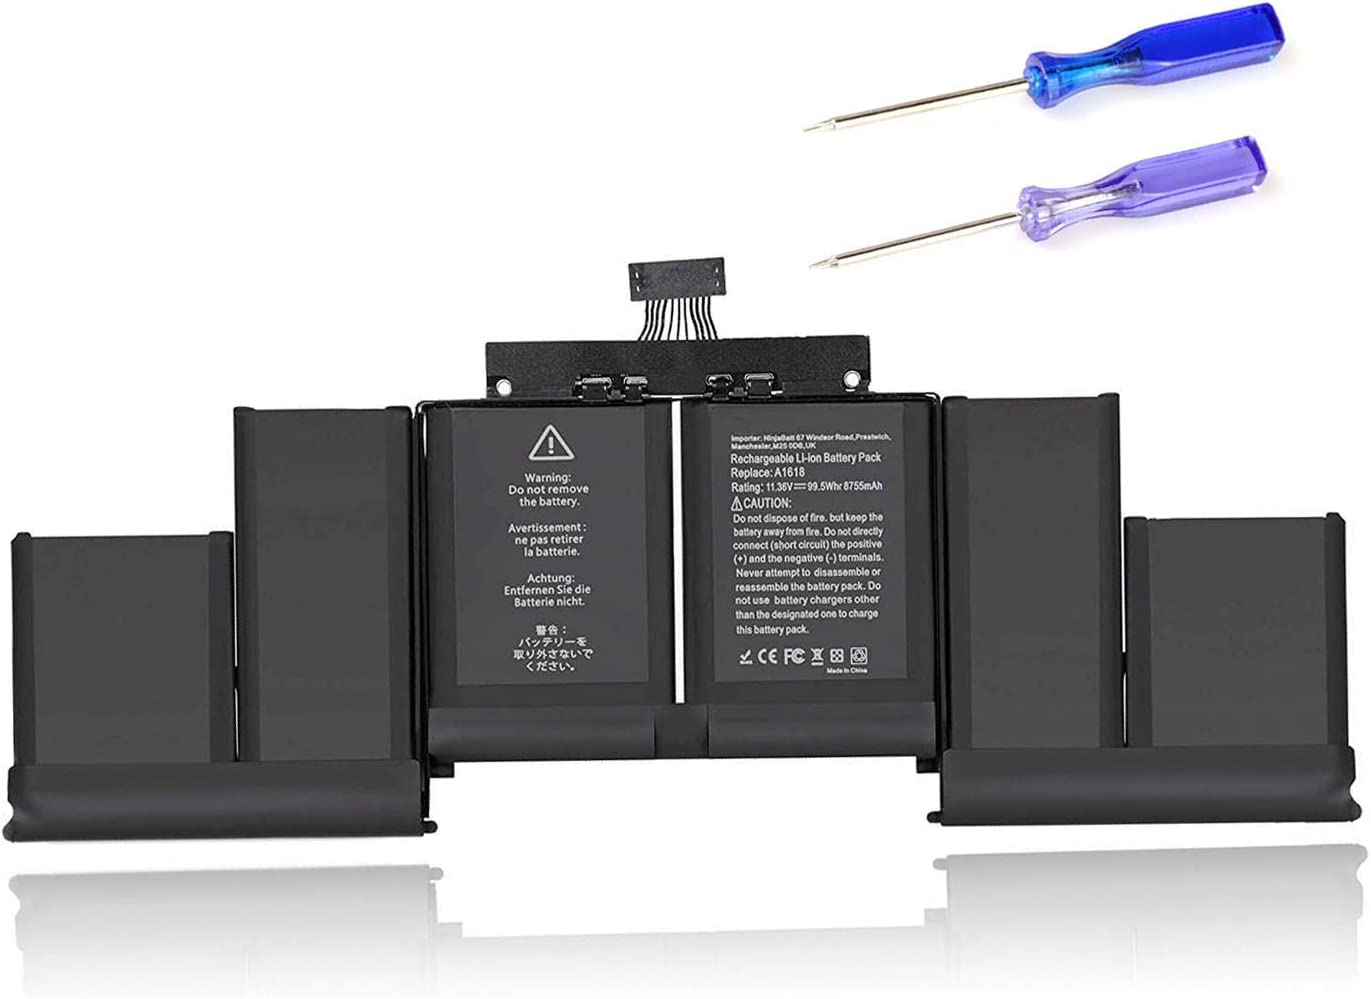 A1618 New Laptop Battery Replacement for A1618 A1398 Battery MacBook Pro 15